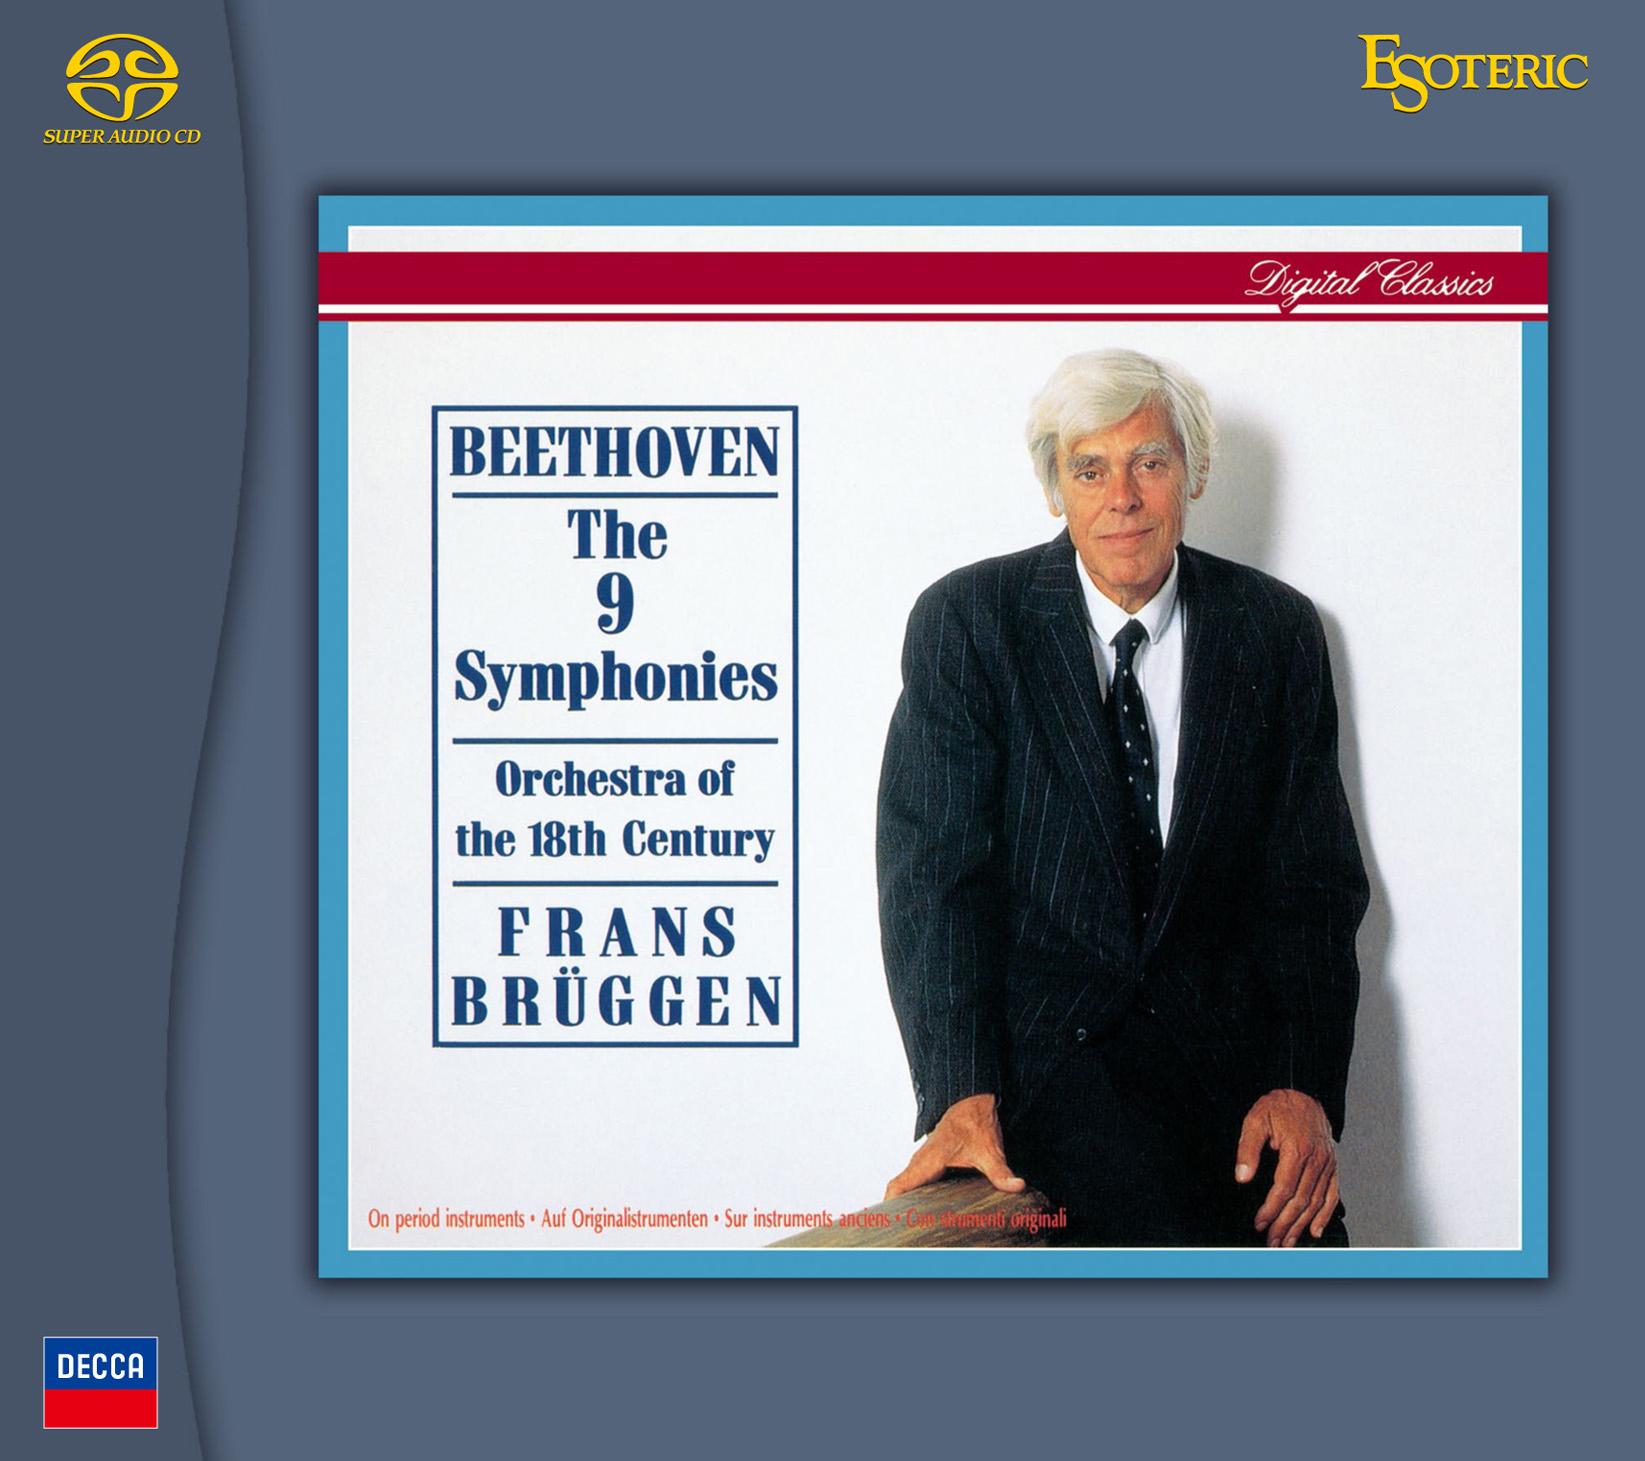 Beethoven The 9 Symphonies Hybrid Stereo Japanese Import 5SACD